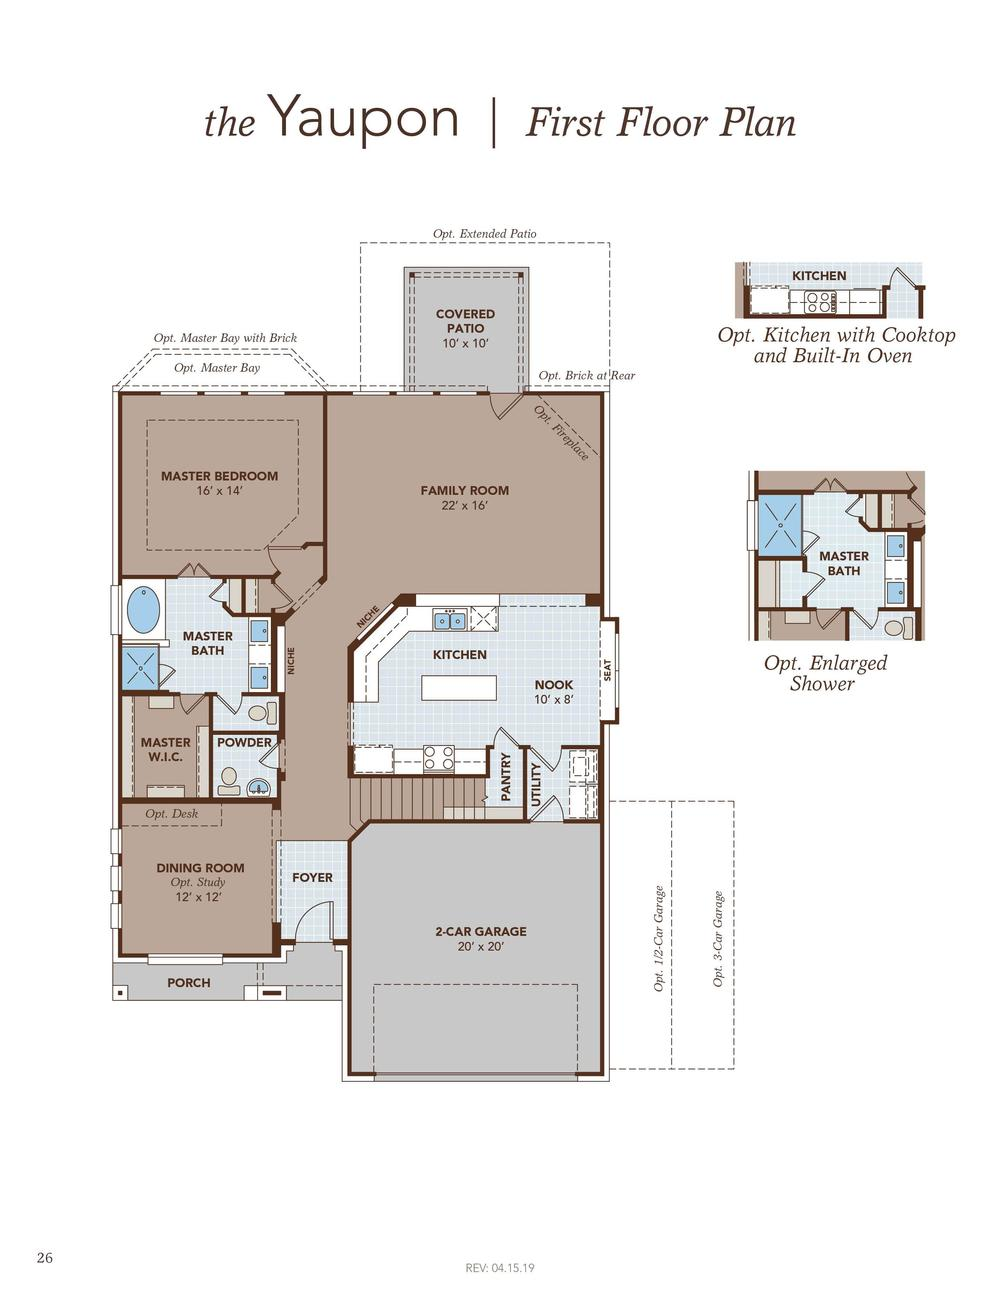 Yaupon First Floor Plan